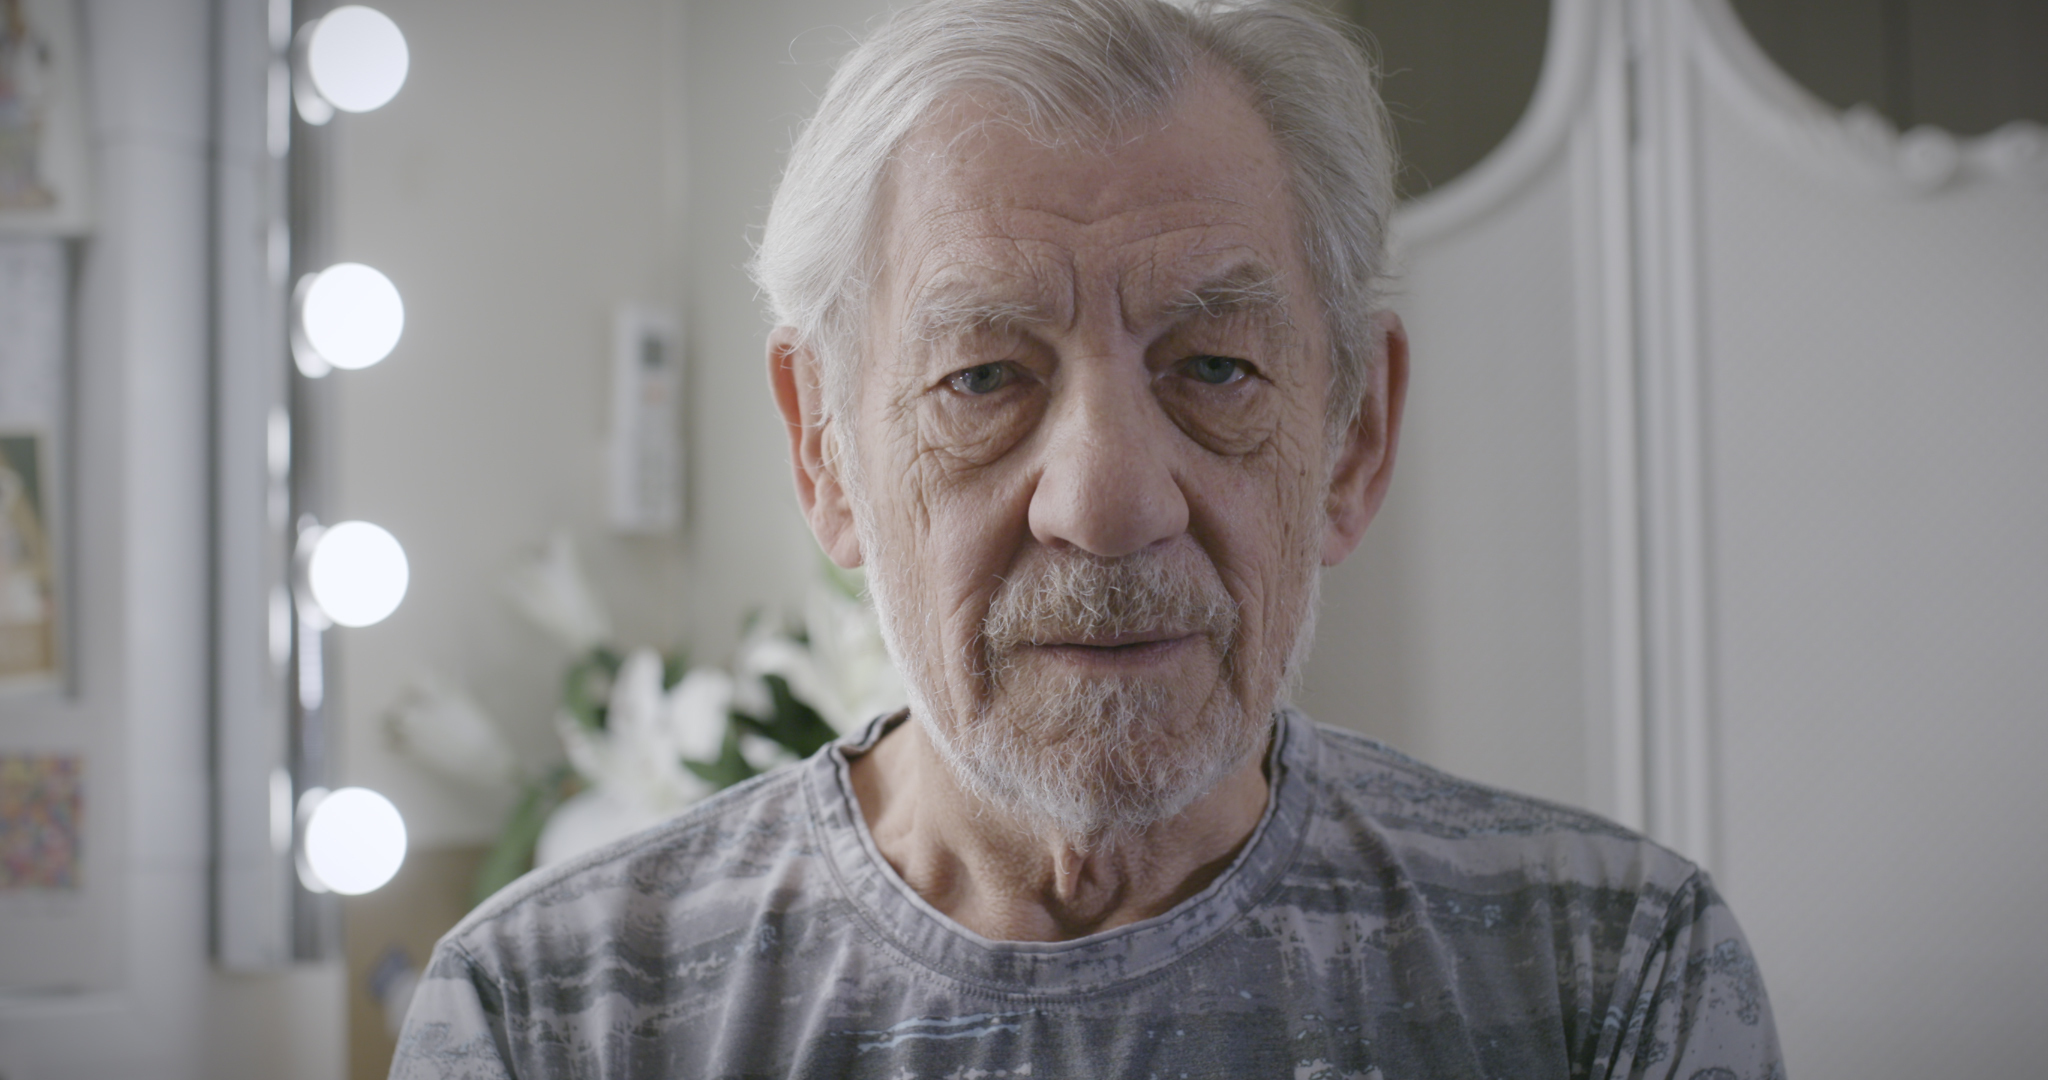 Embargoed to 0001 Wednesday October 10Undated Crisis handout photo of Sir Ian McKellen appearing in a new video calling for an end to homelessness in Great Britain. PRESS ASSOCIATION Photo. Issue date: Wednesday October 10, 2018. The f